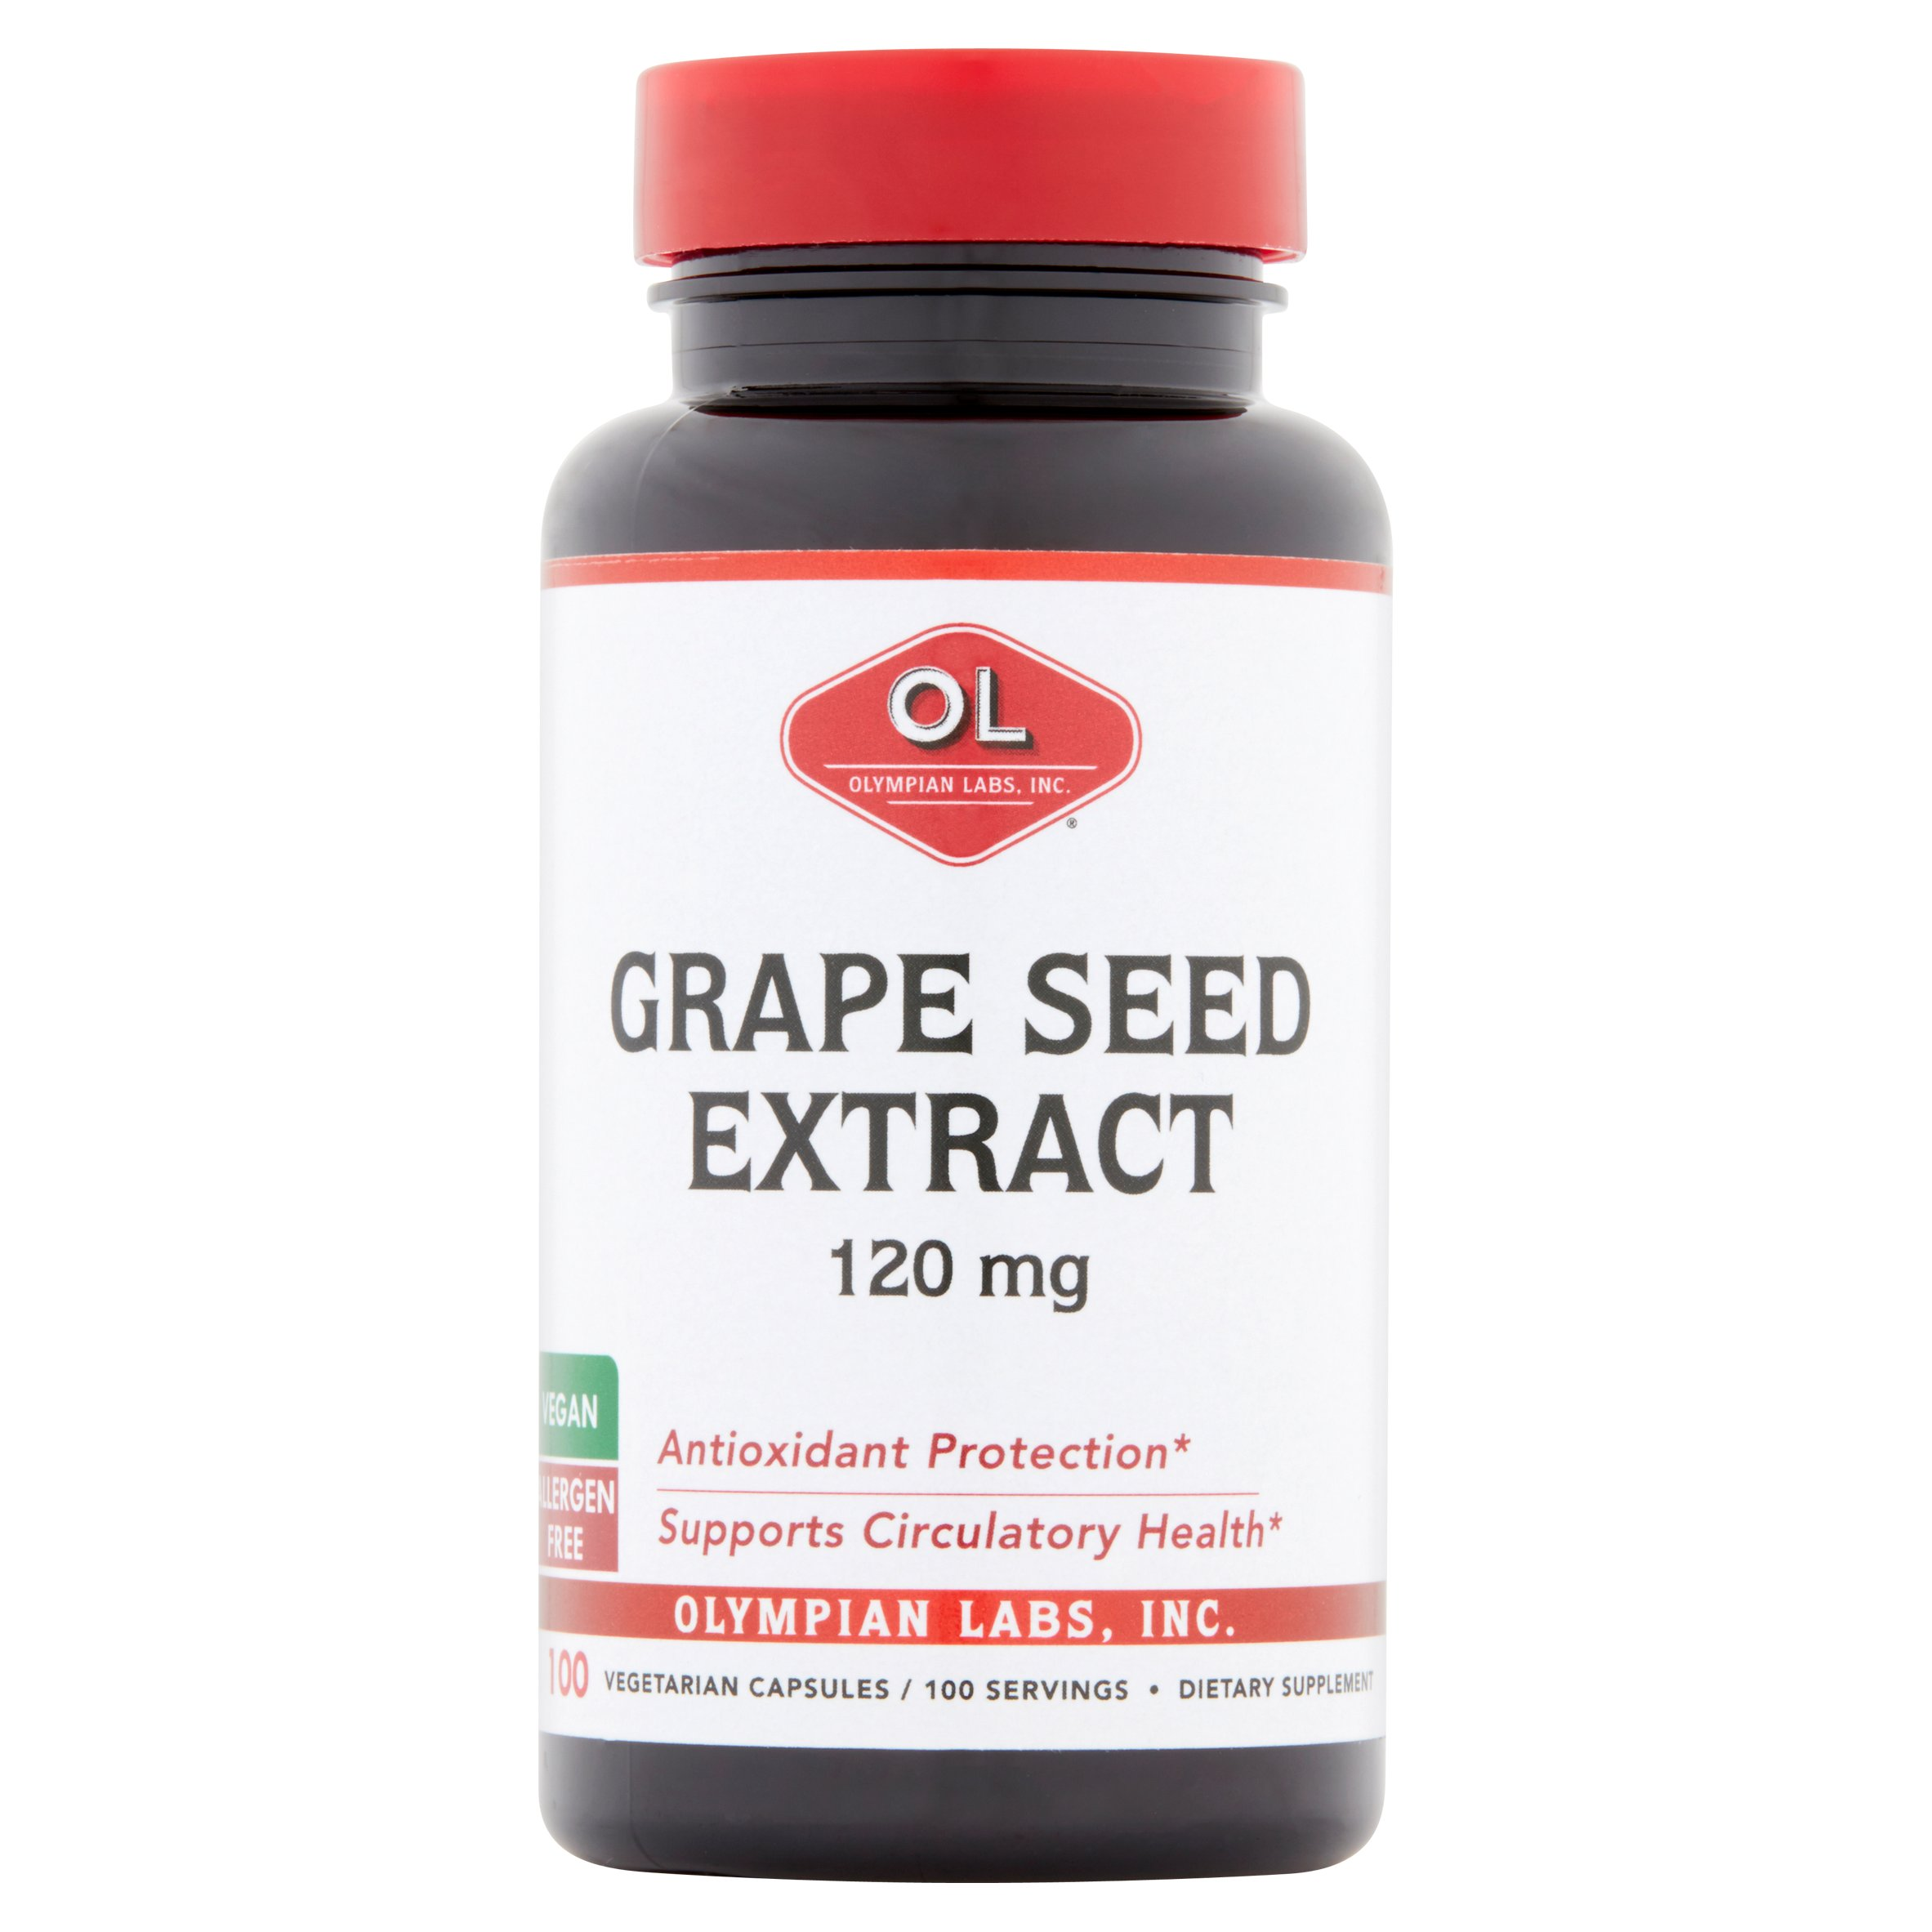 Olympian Labs Grape Seed Extract Vegetarian Capsules, 120 mg, 100 count